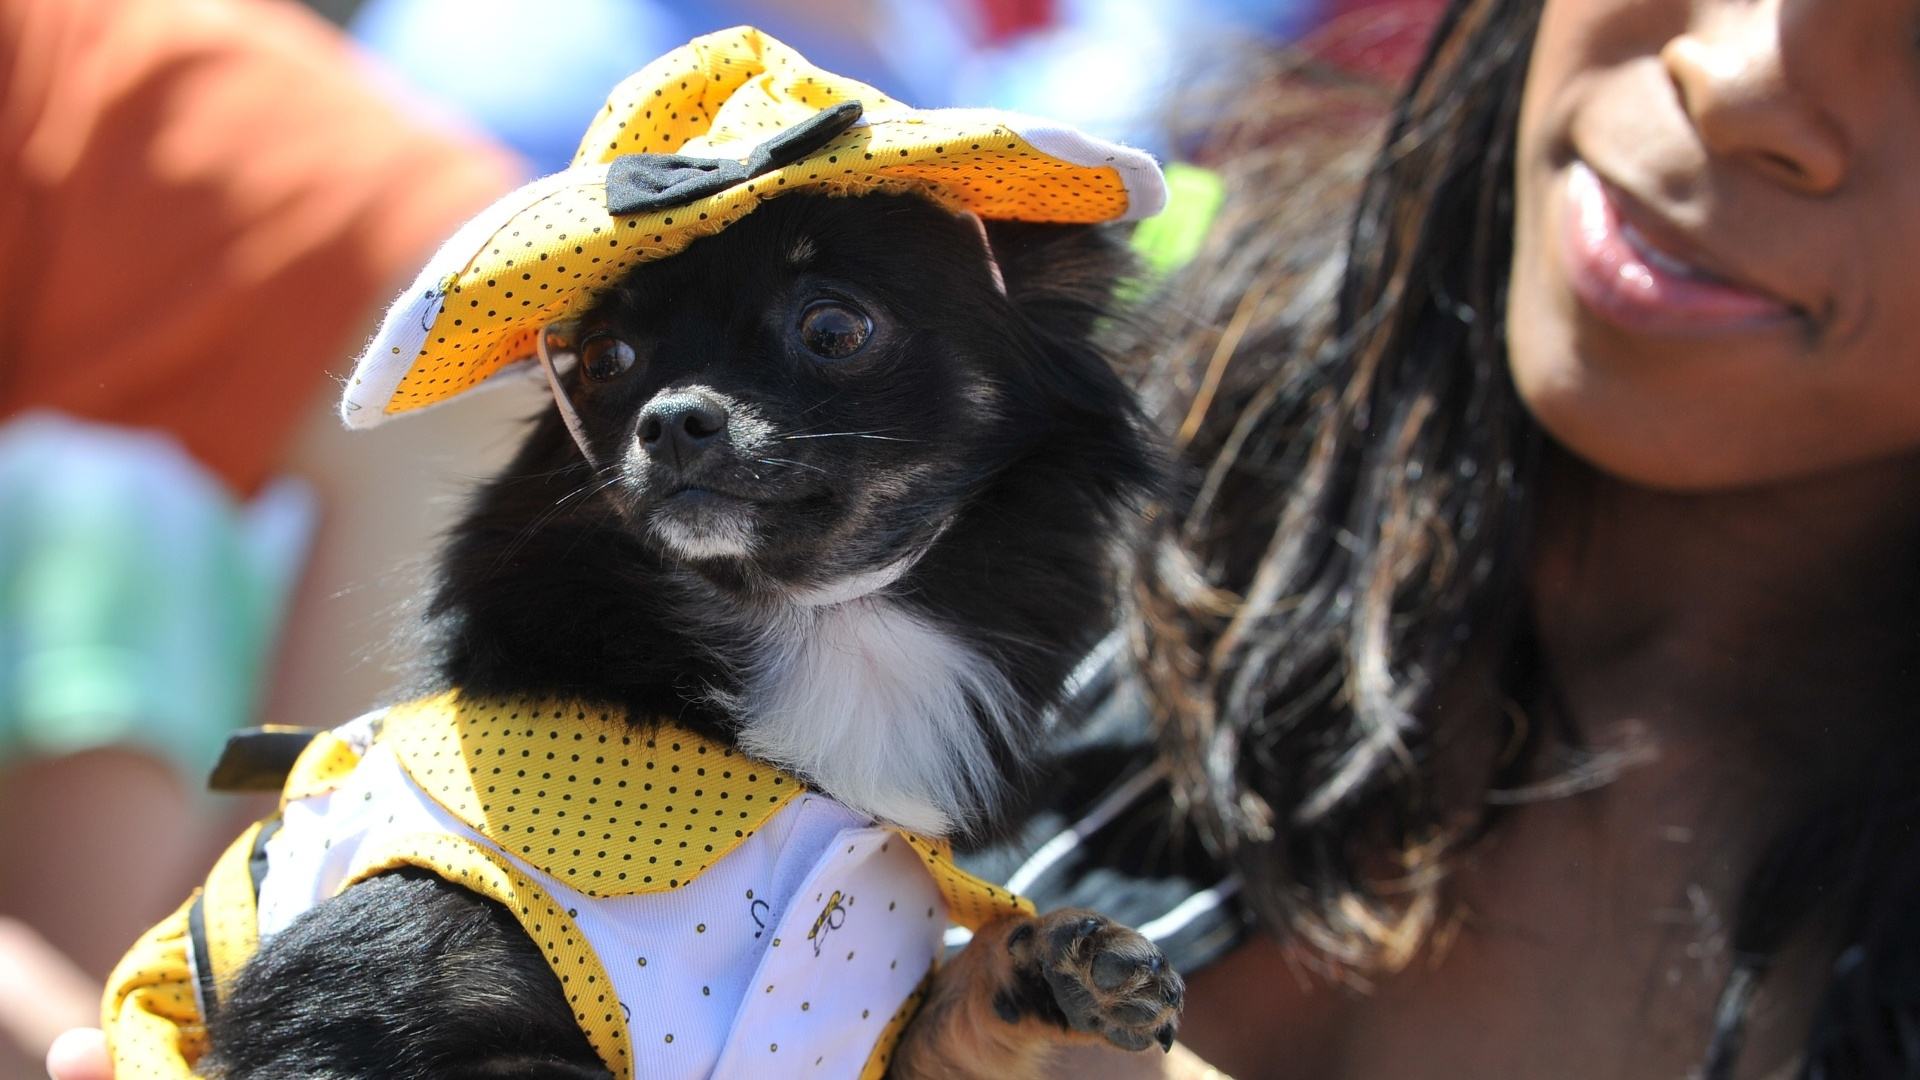 4.mai.2013 - Mulher segura cachorro da raa chihuahua fantasiado durante a 'Corrida dos Chihuahuas', neste sbado (4), em Washington. O evento faz parte das comemoraes do dia 5 de maio, no qual a comunidade mexicana celebra a vitria sobre as foras francesas em 1862